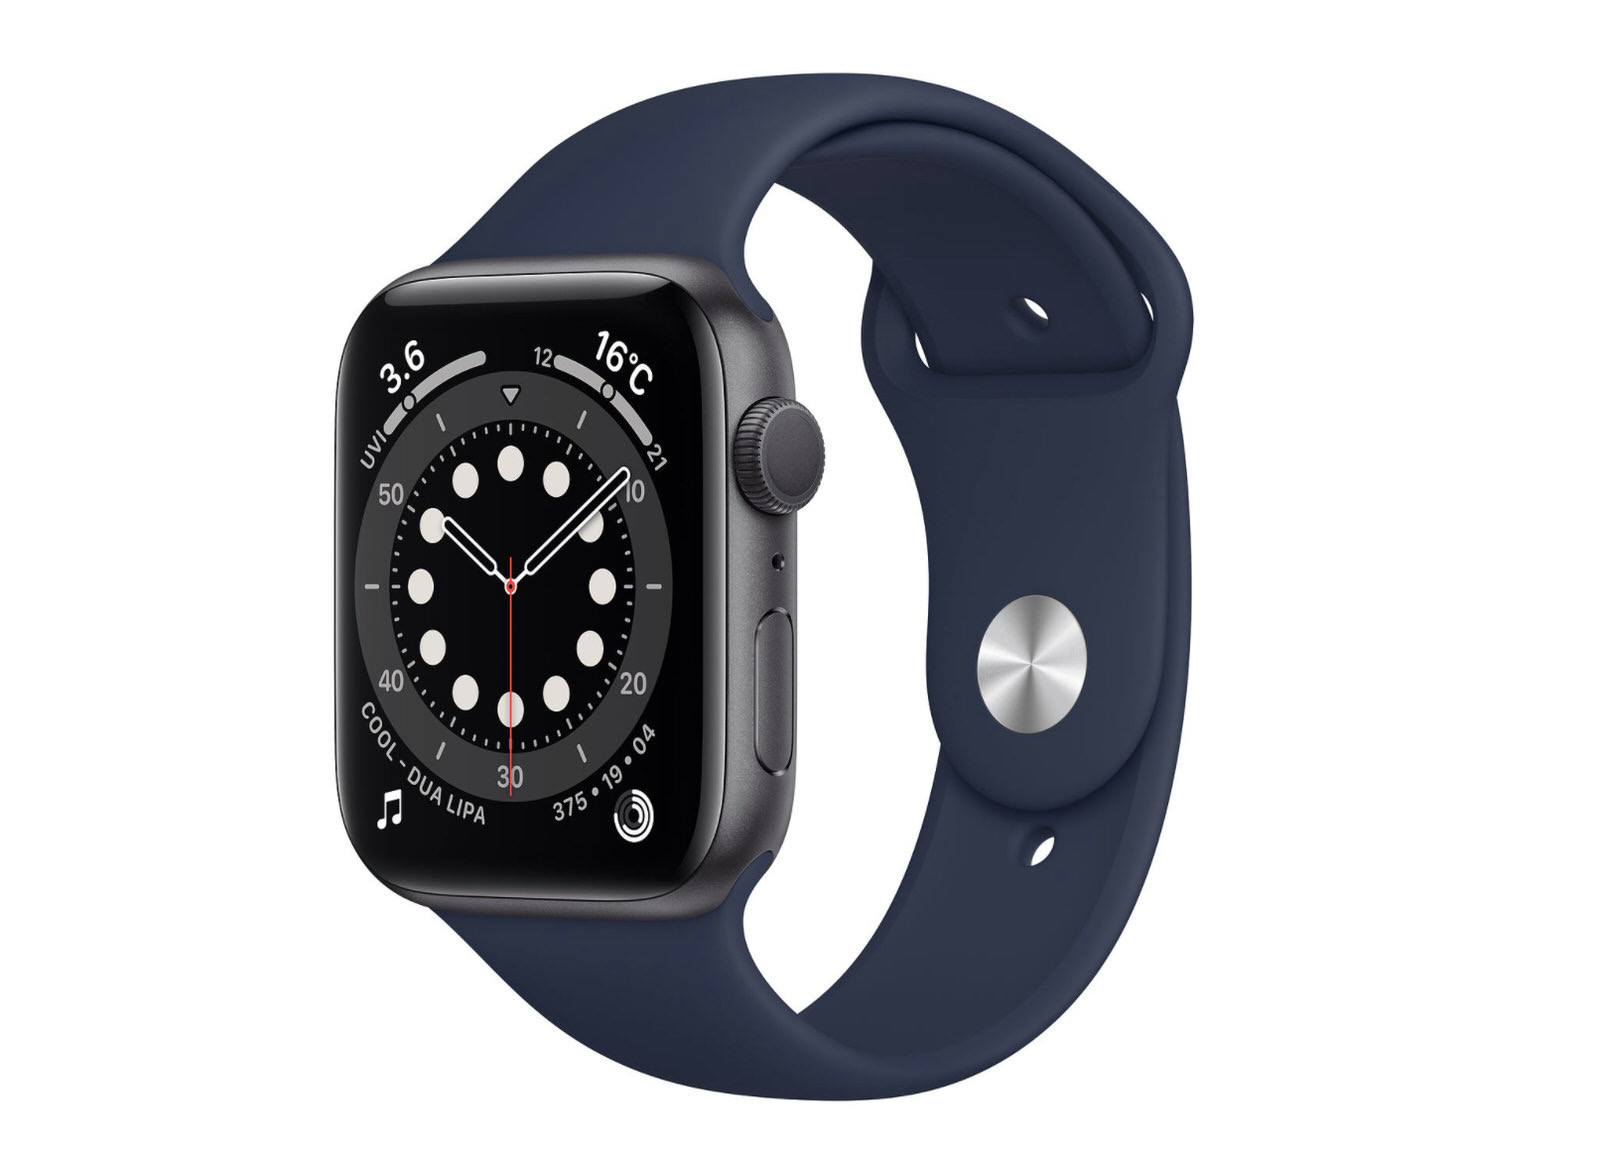 Apple Watch Series 6 −1